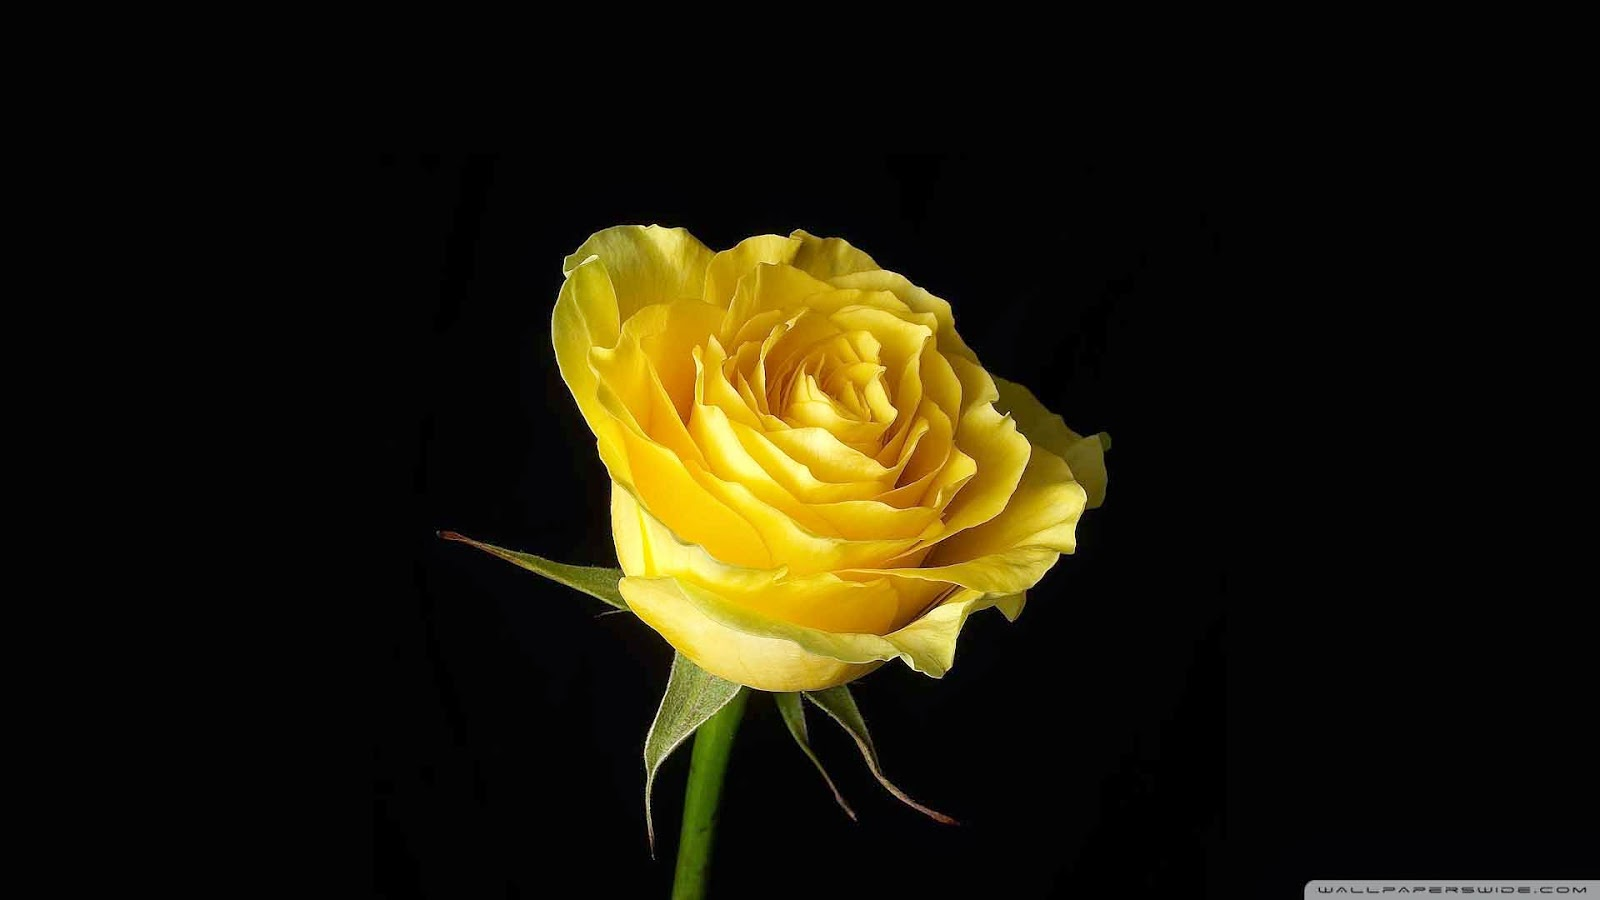 yellow rose on black background wallpaper